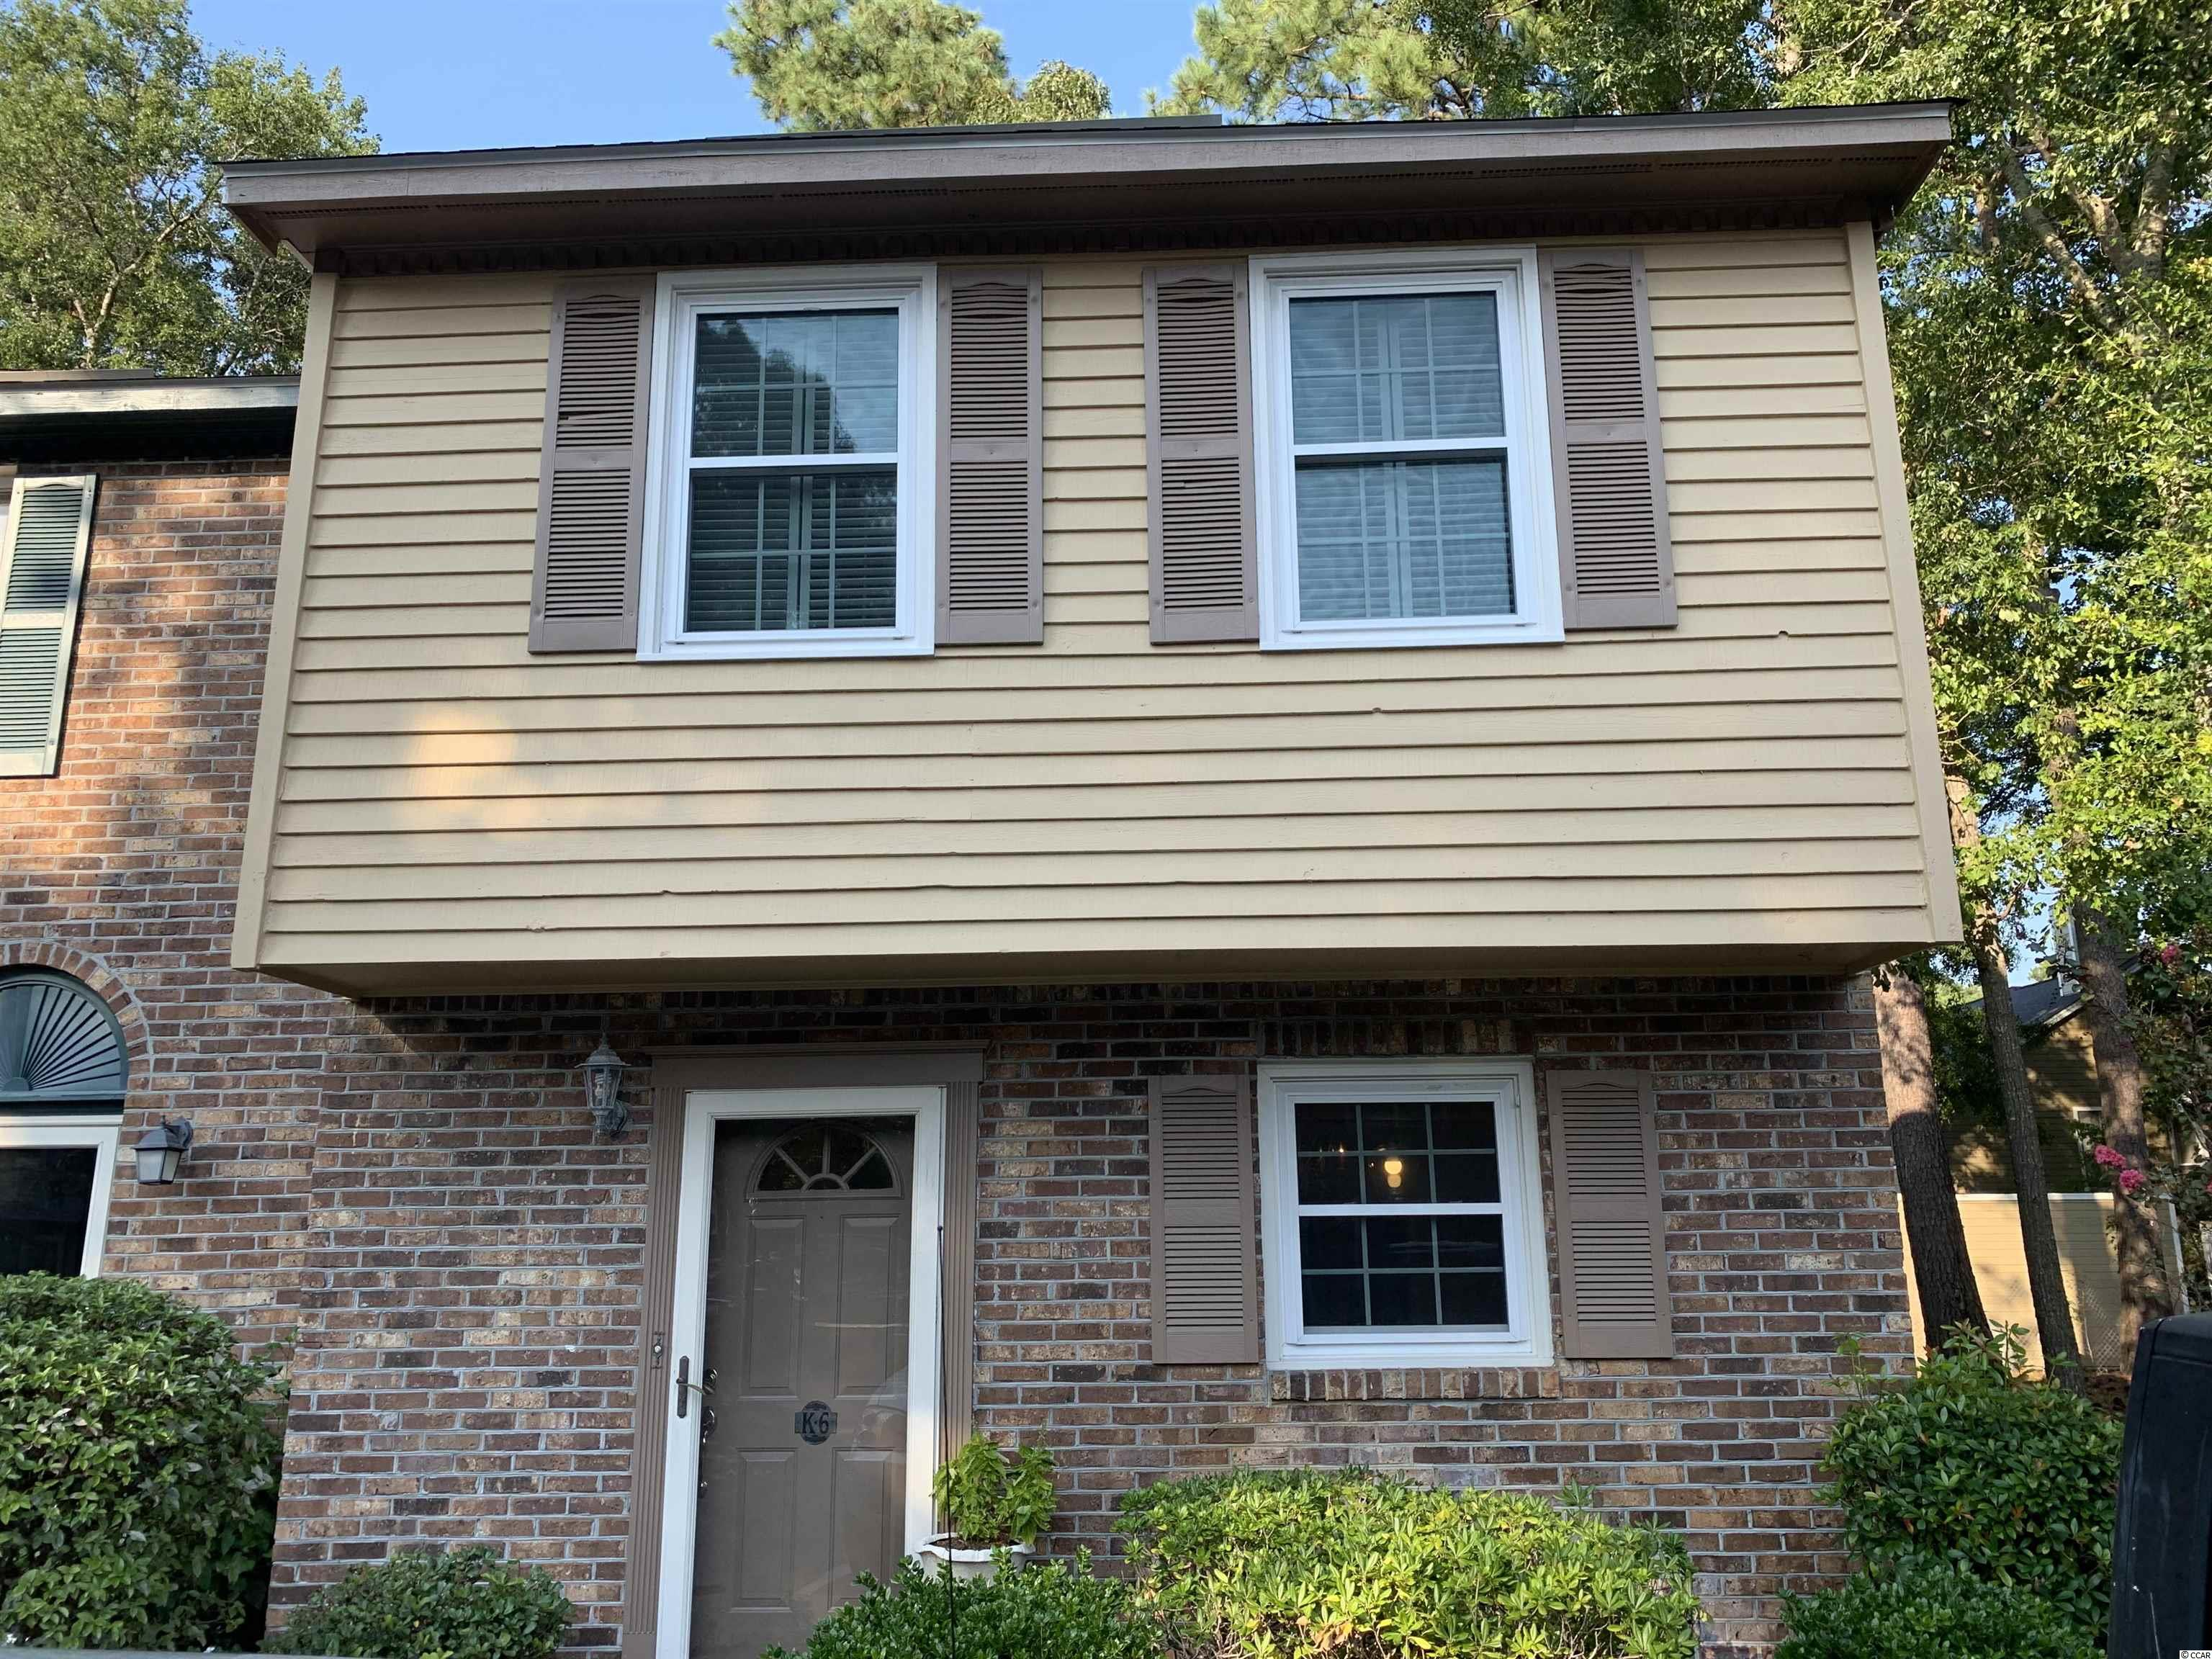 Hidden treasure...this 3 bedroom 2.5 bathroom end unit located in the much desired neighborhood of Carolina Ridge features a large open living area with plenty of natural sunlight, custom made plantation shutters and drapes, hard wood flooring throughout, a wood burning fireplace and half bathroom. The kitchen is equipped with plenty of cabinets for storage, corian countertops, tile backsplash and SS appliances.  Relax and enjoy your private fenced in patio, which includes an attached storage closet for your beach chairs or the amenities that include your community pool, playground, tennis / basketball courts. Upstairs you will find the 3 bedroom and 2 full baths.  Carolina Ridge is minutes away from the beautiful Atlantic Ocean, shopping or dining.